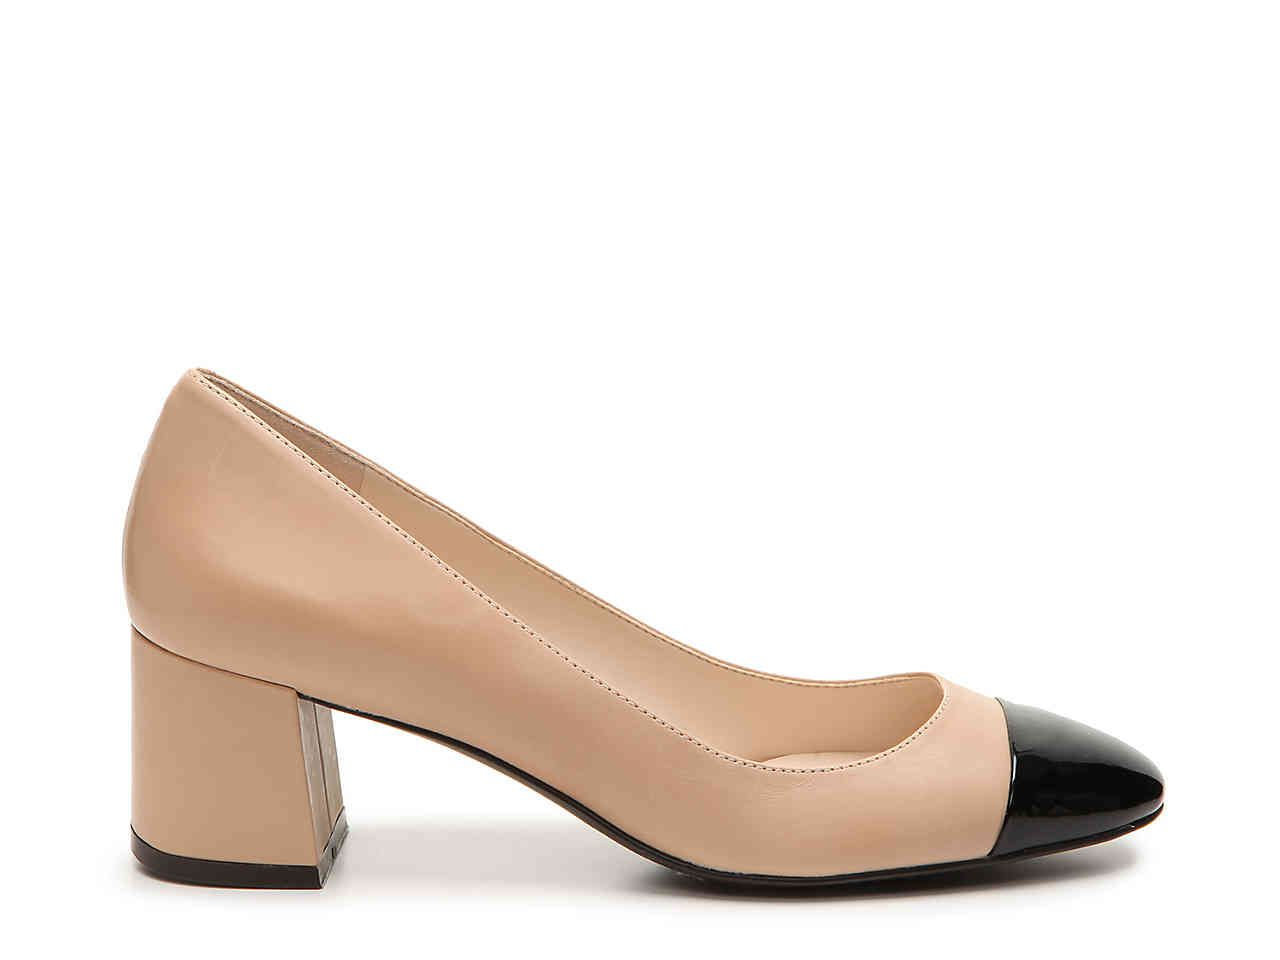 Cole Haan Dawna Pump Women's Shoes DSW (With images